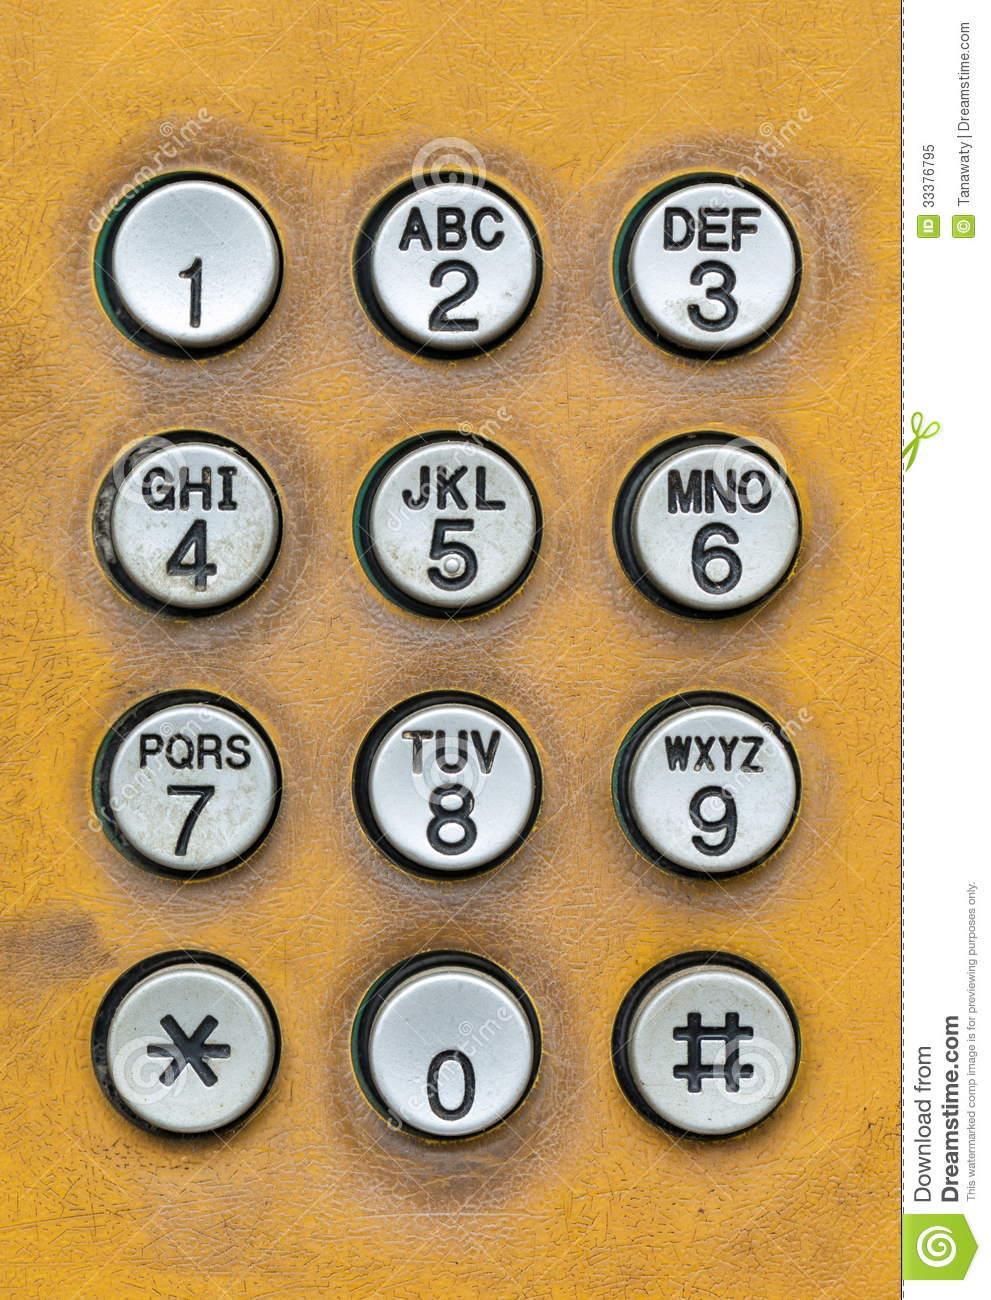 Old Dial Pad Of Public Telephone Box Royalty Free Stock Photo ...